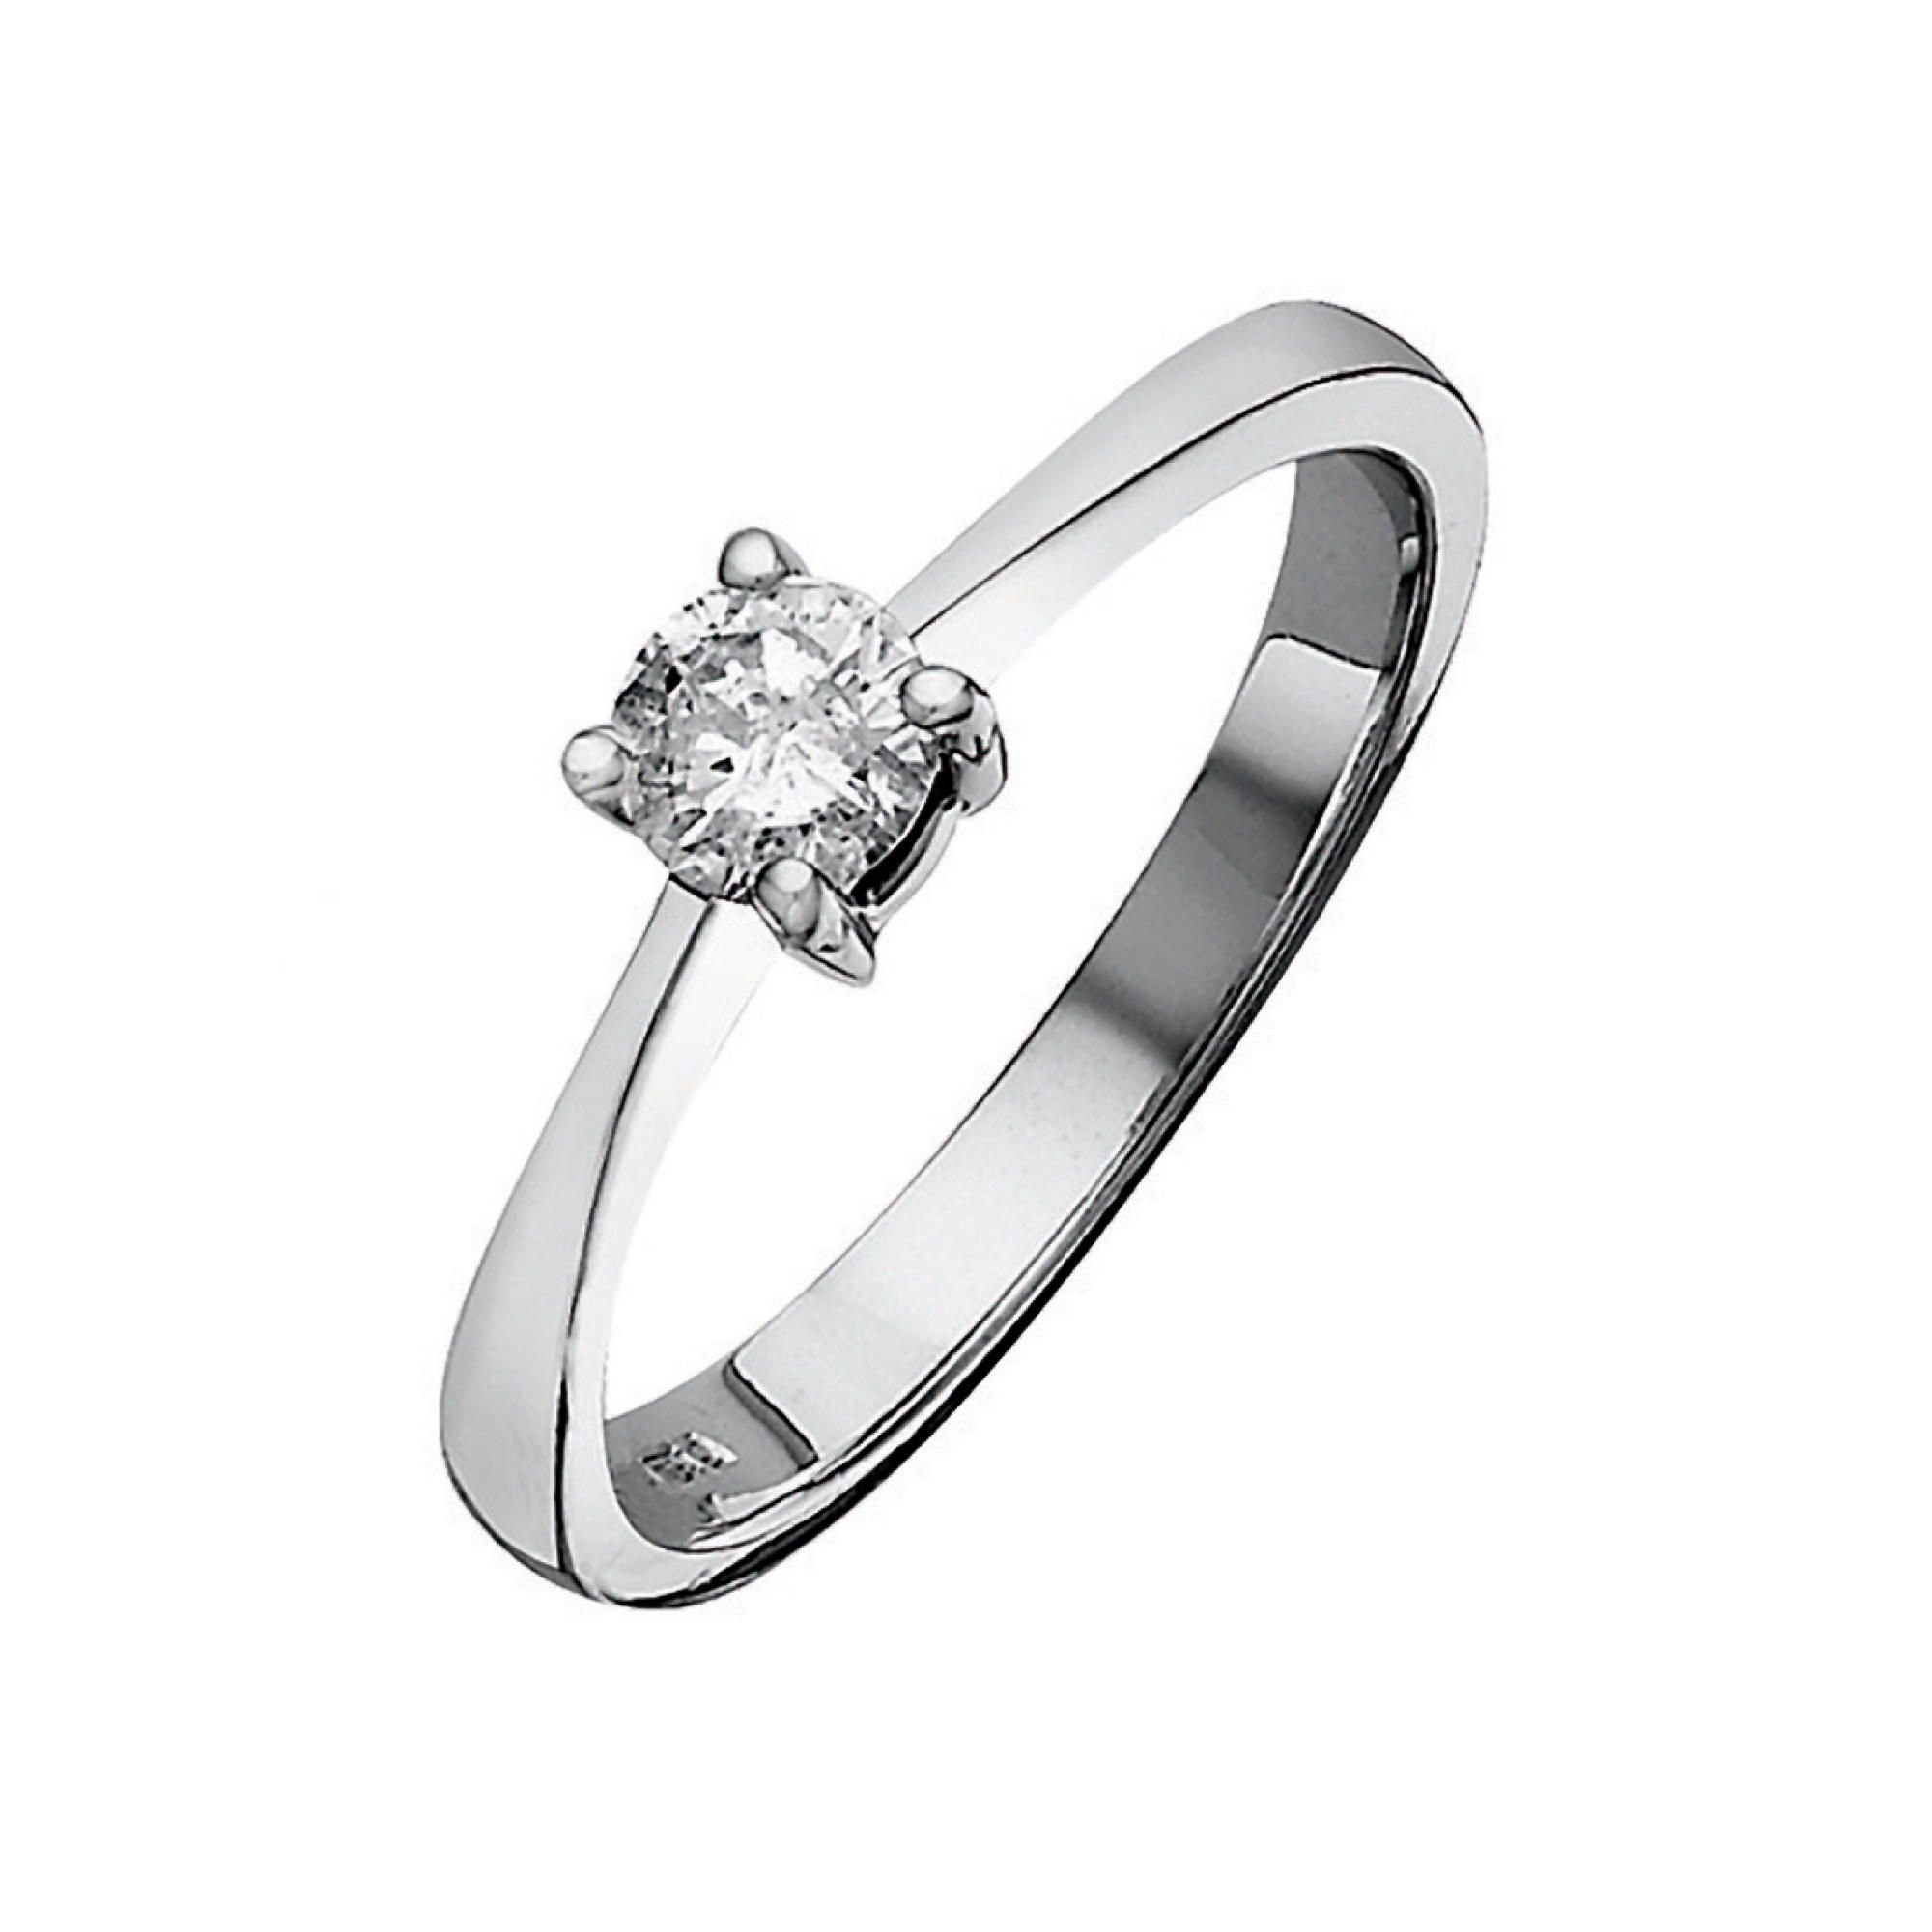 9ct White Gold 50Pt Diamond Solitaire Ring, P at Tesco Direct